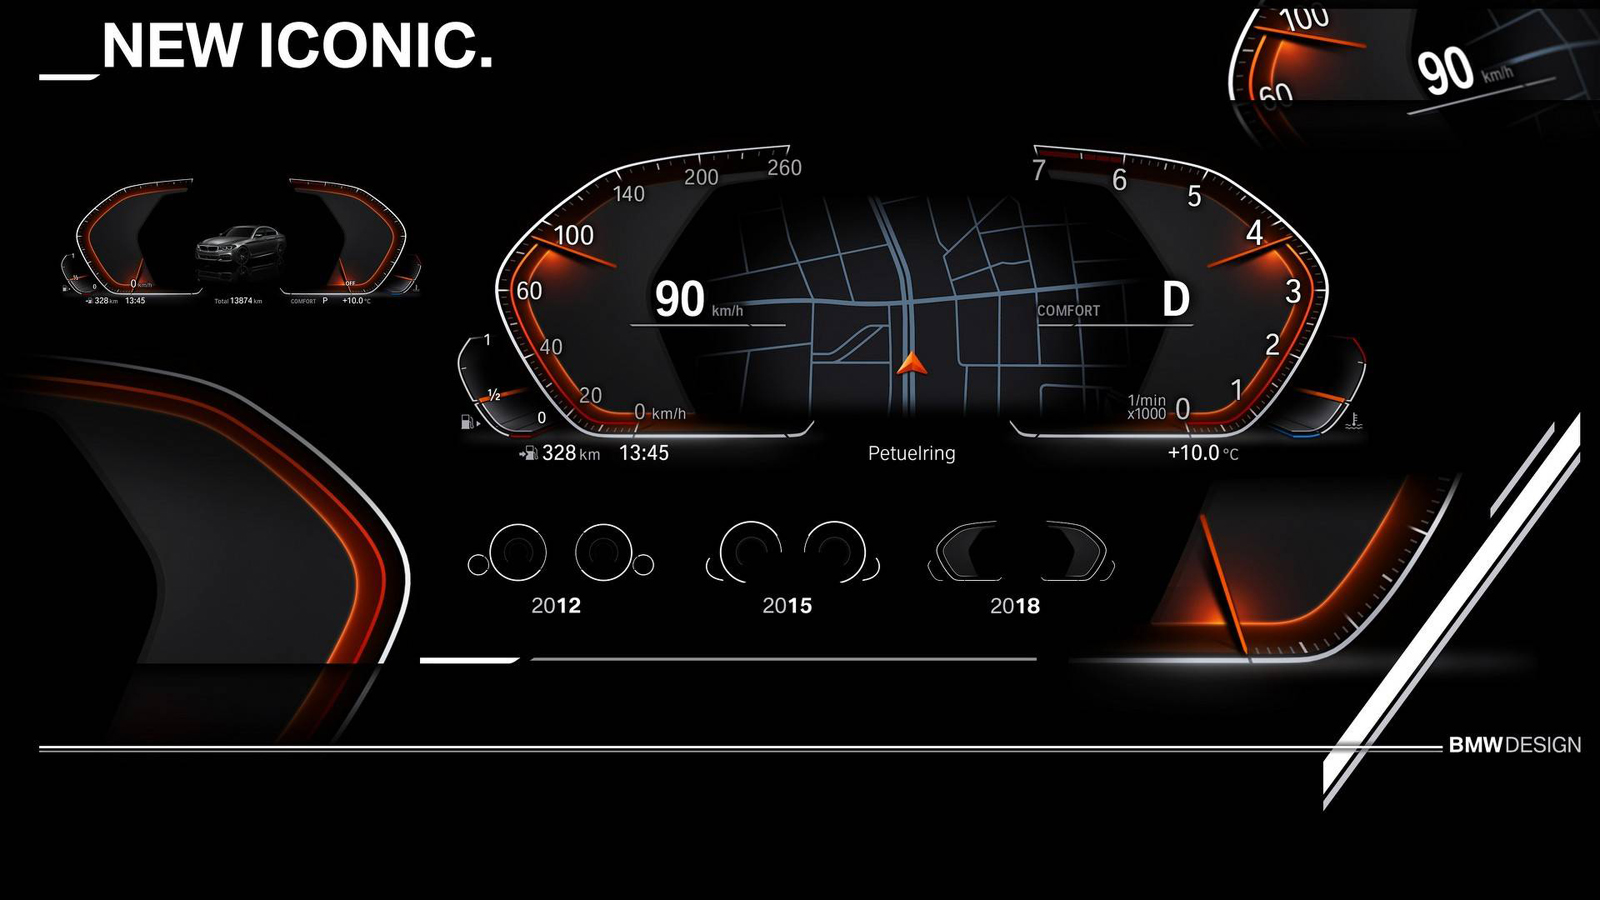 BMW Shows Off Its Snazzy New Digital Instrument Display AutoGuide - Auto display